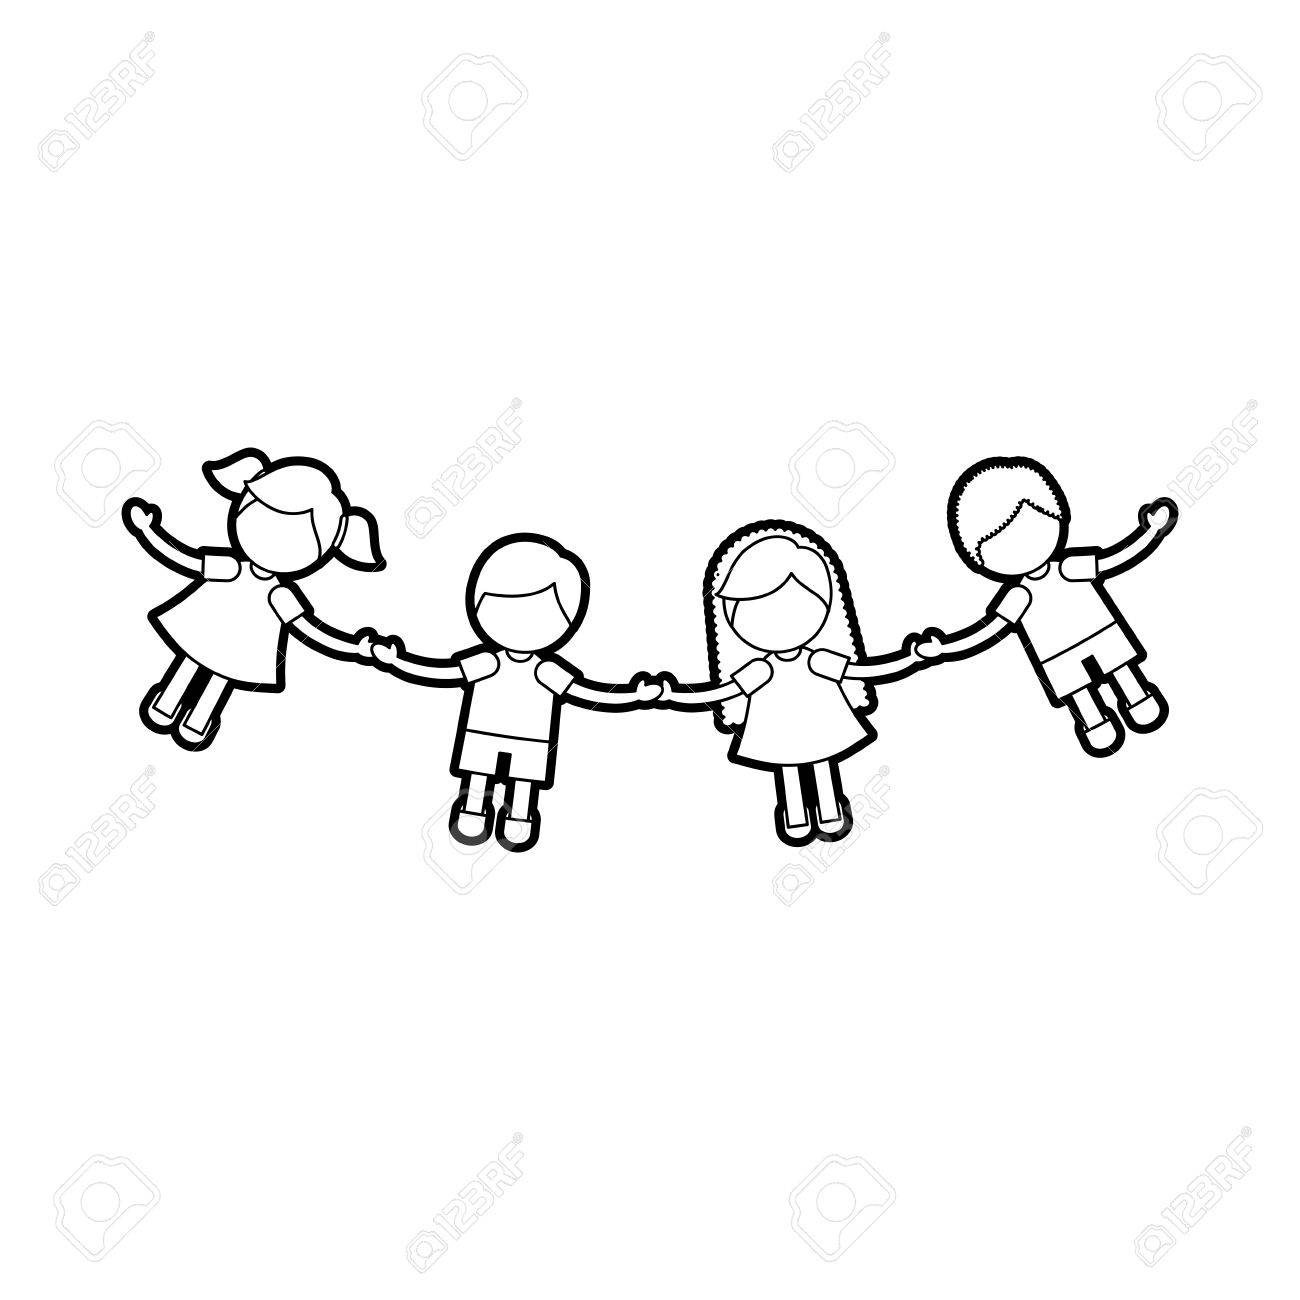 children holding hands characters vector illustration design royalty